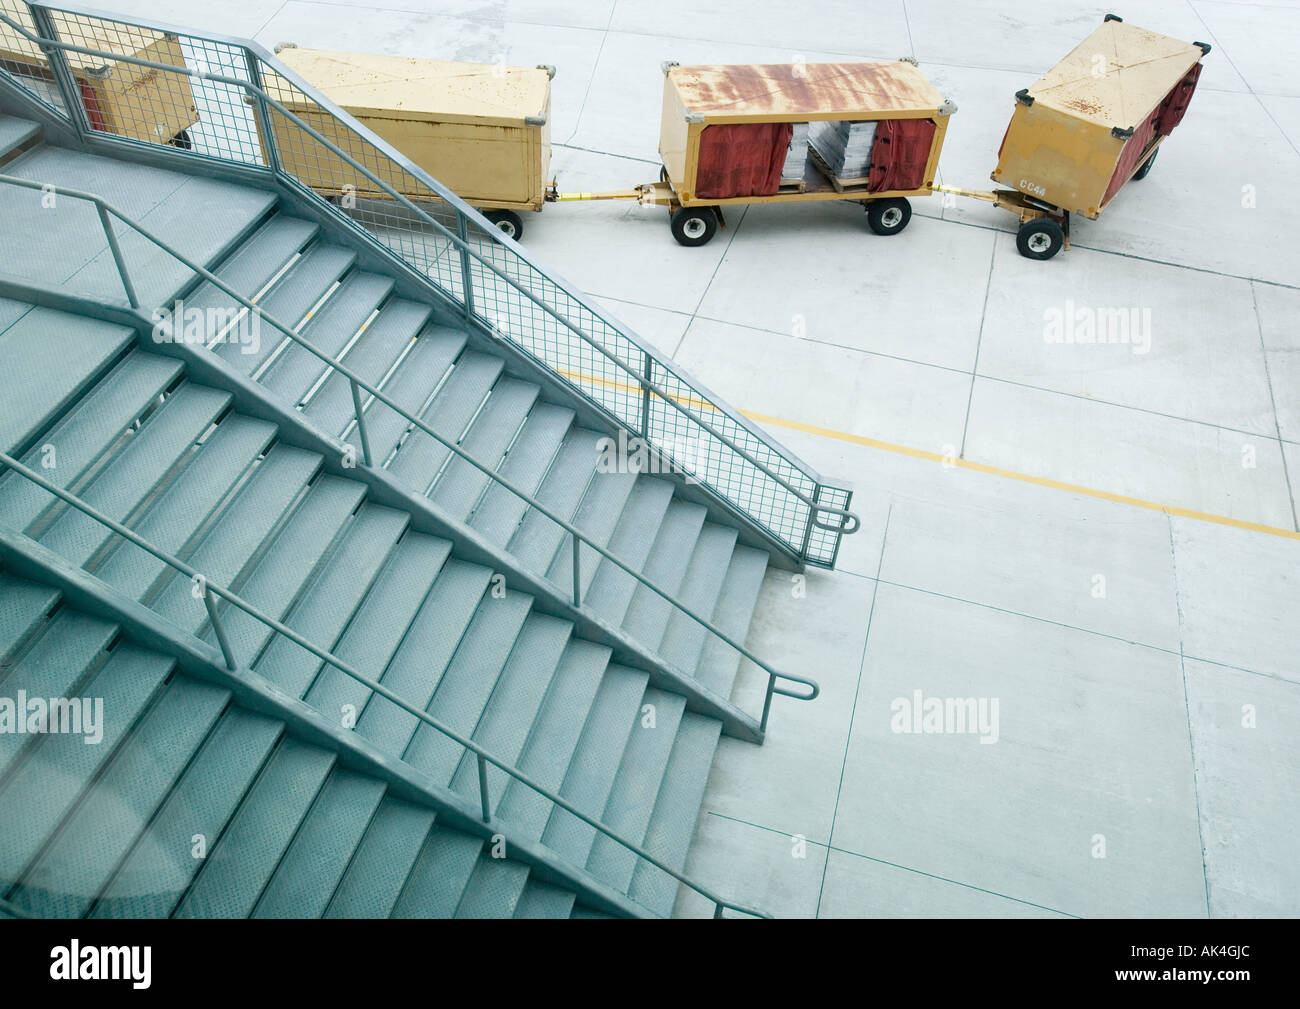 Stairs and cargo containers on tarmac - Stock Image